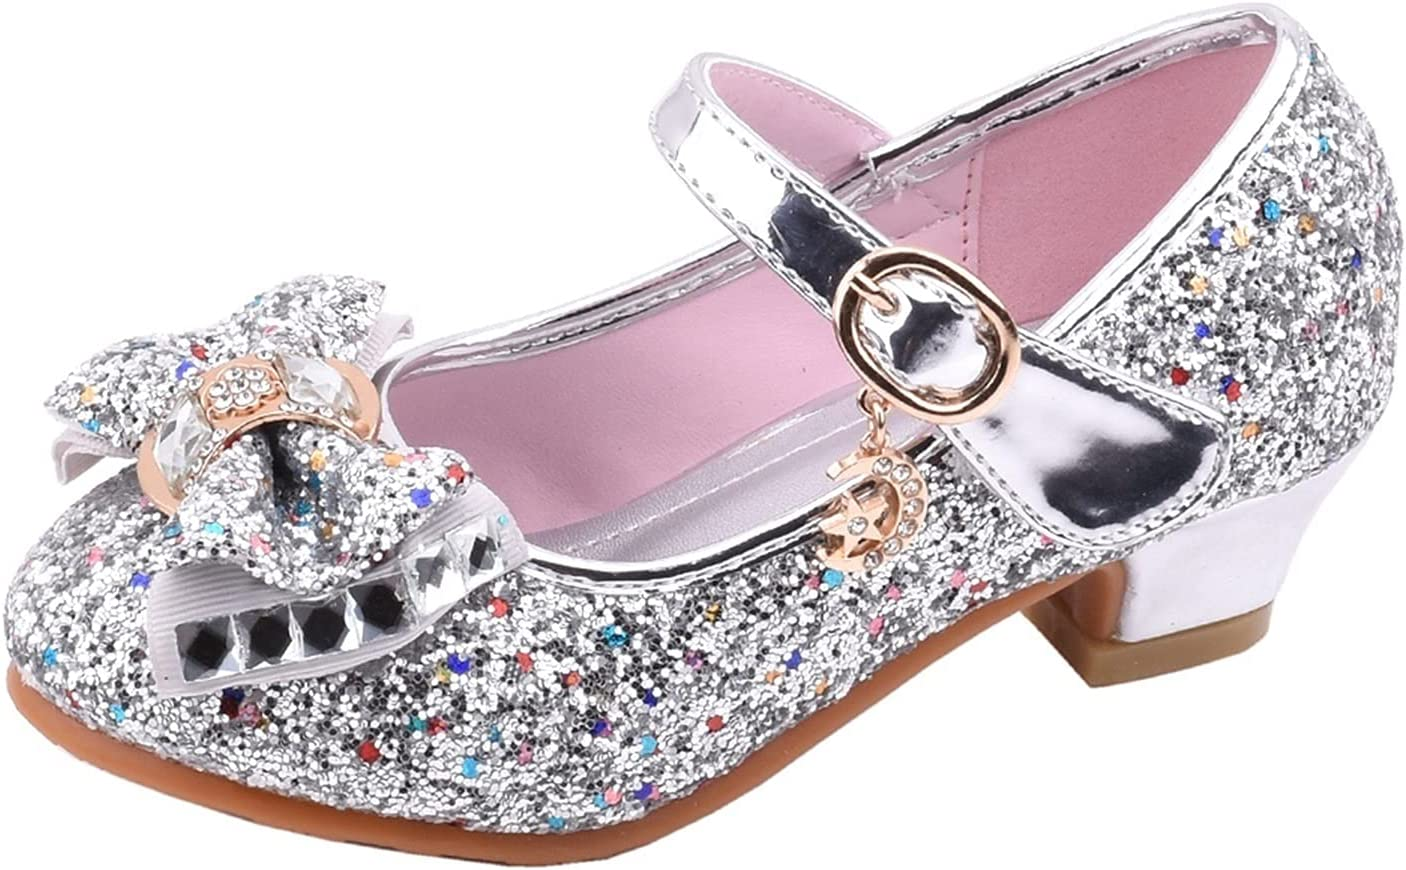 Bownot Princess Houston Mall Sandals Infant New Shipping Free Shipping Kids Bow Bling Crystal Baby Girls